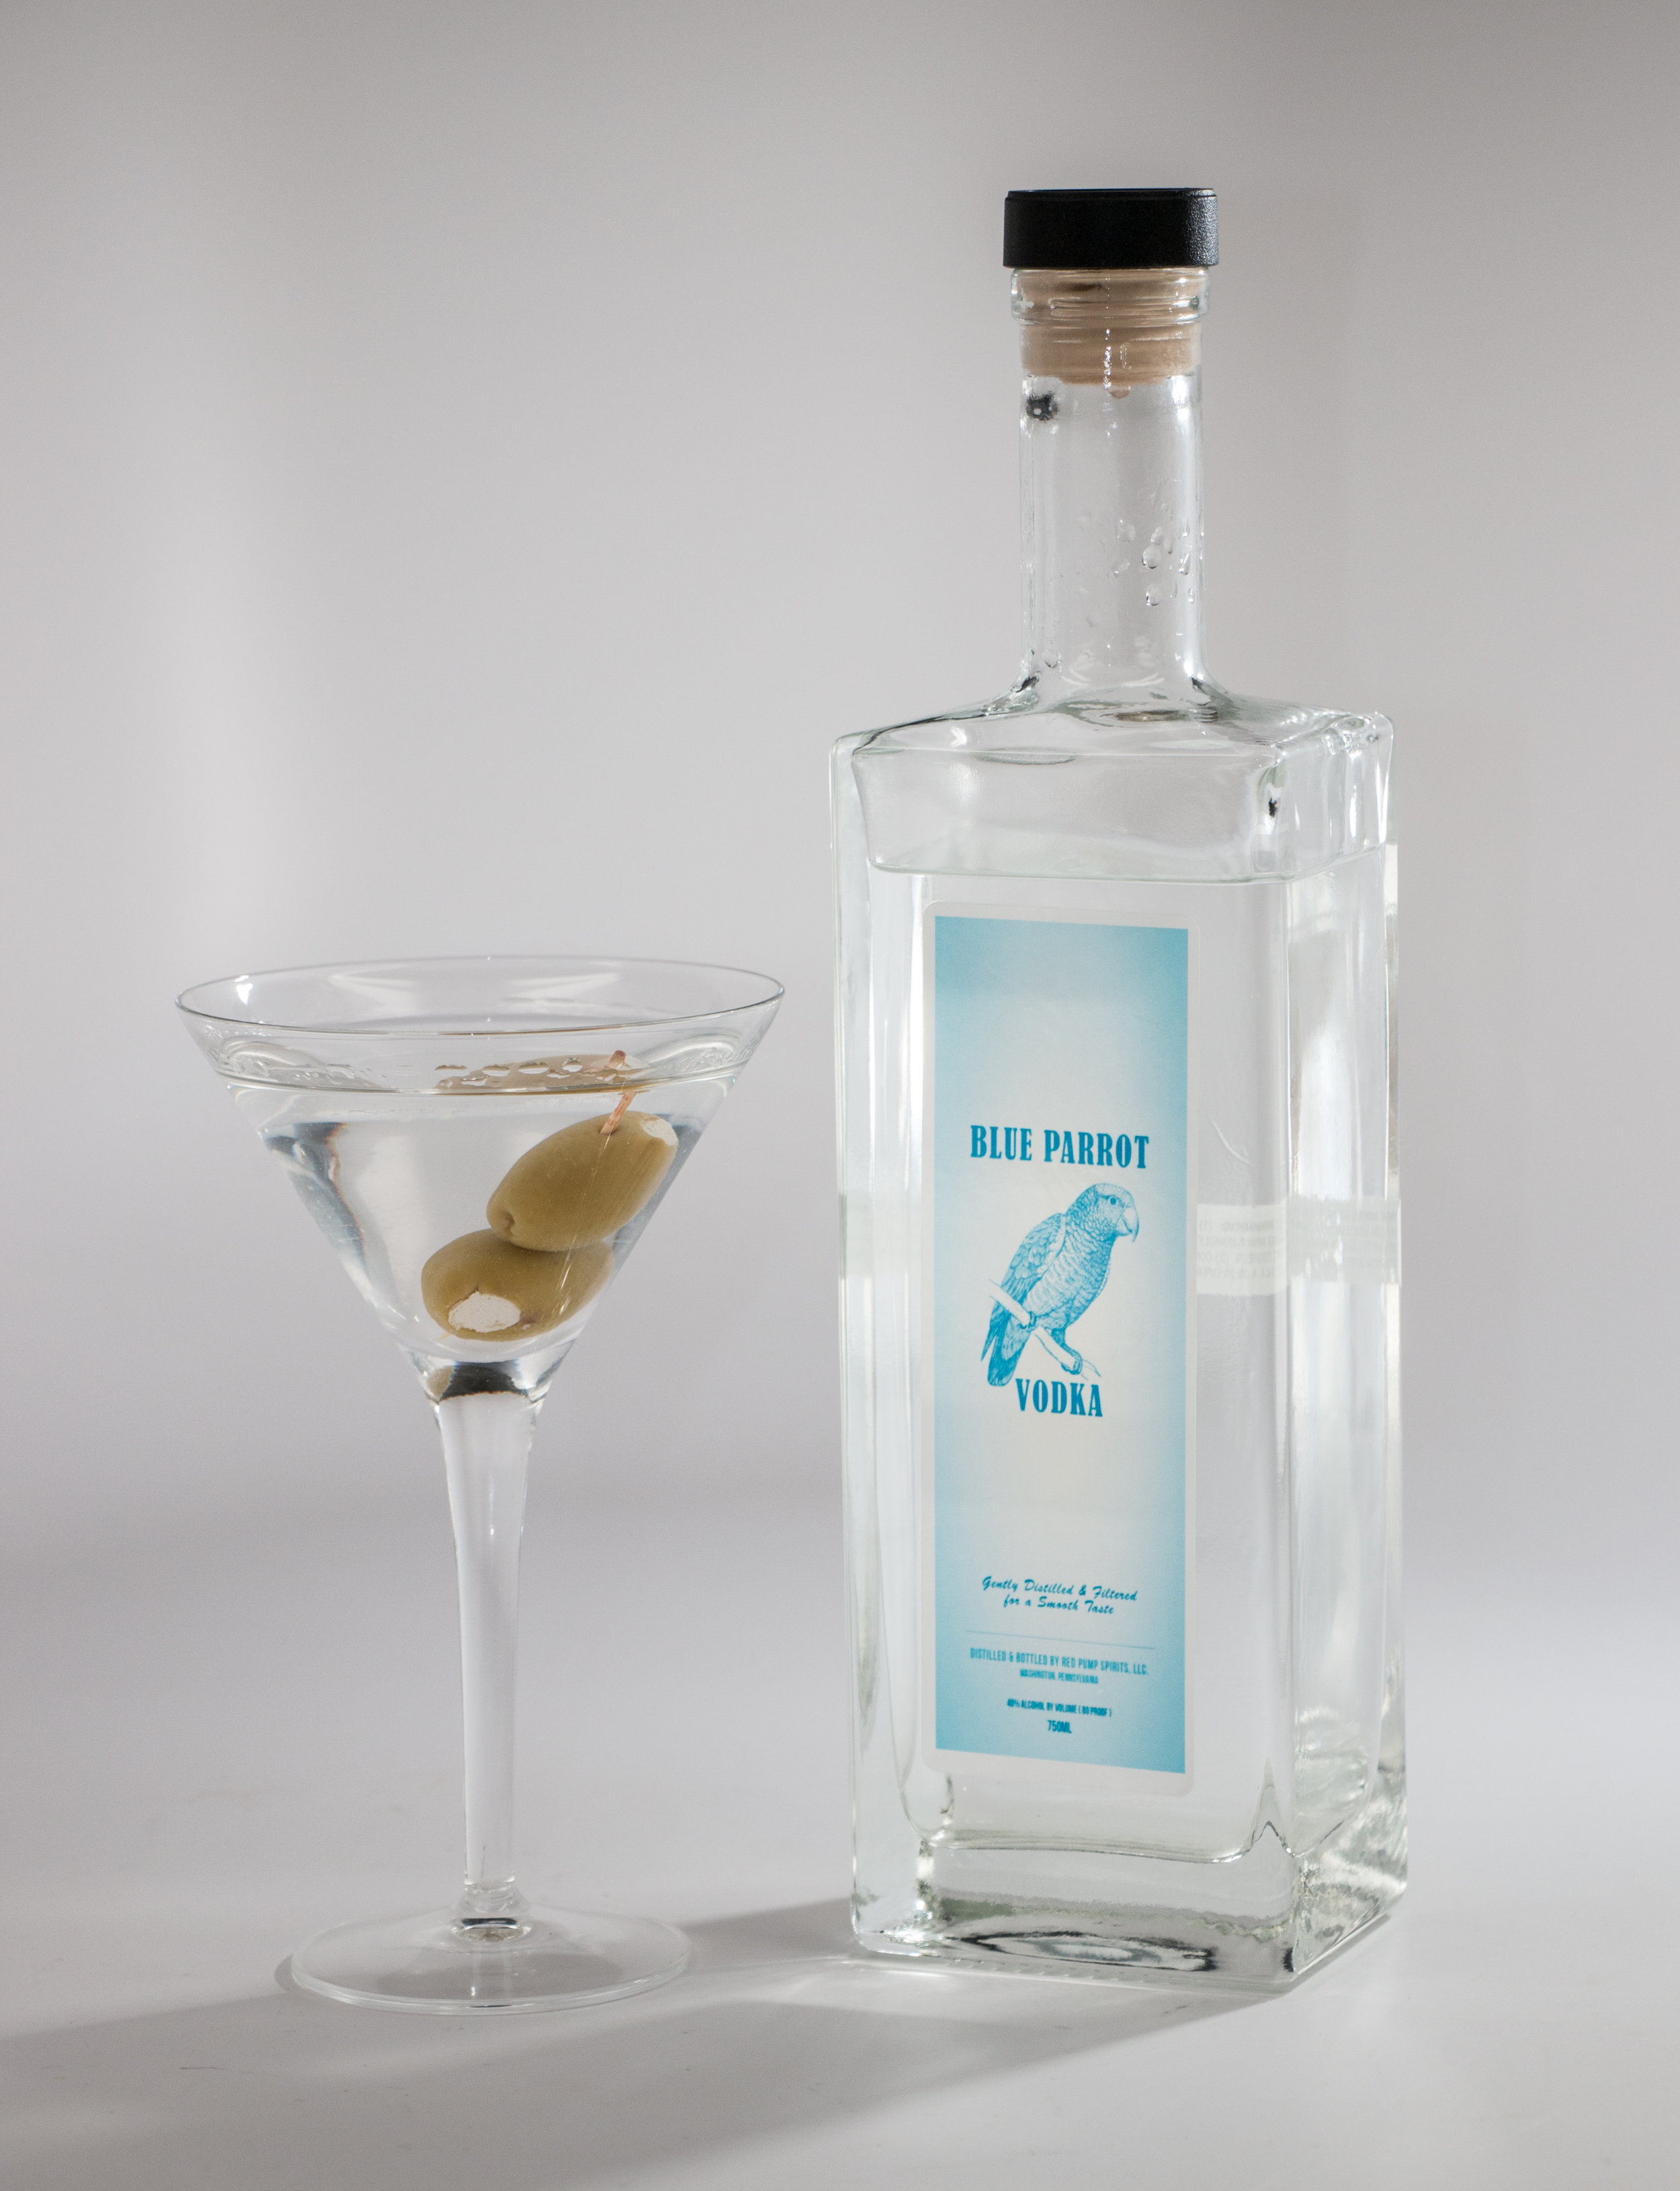 BLUE PARROT VODKA - Blue Parrot Premium Vodka is made from locally sourced wheat grain. The spirit is distilled multiple times then slowly filtered through charcoal. The smooth spirit can be either sipped neat or can be used as a base spirit for your favorite cocktail.If you think all vodkas are aroma and taste free spirits, then a sip of Blue Parrot Premium Vodka will be a pleasant surprise!We bottle it at 80 Proof / 40% ABV